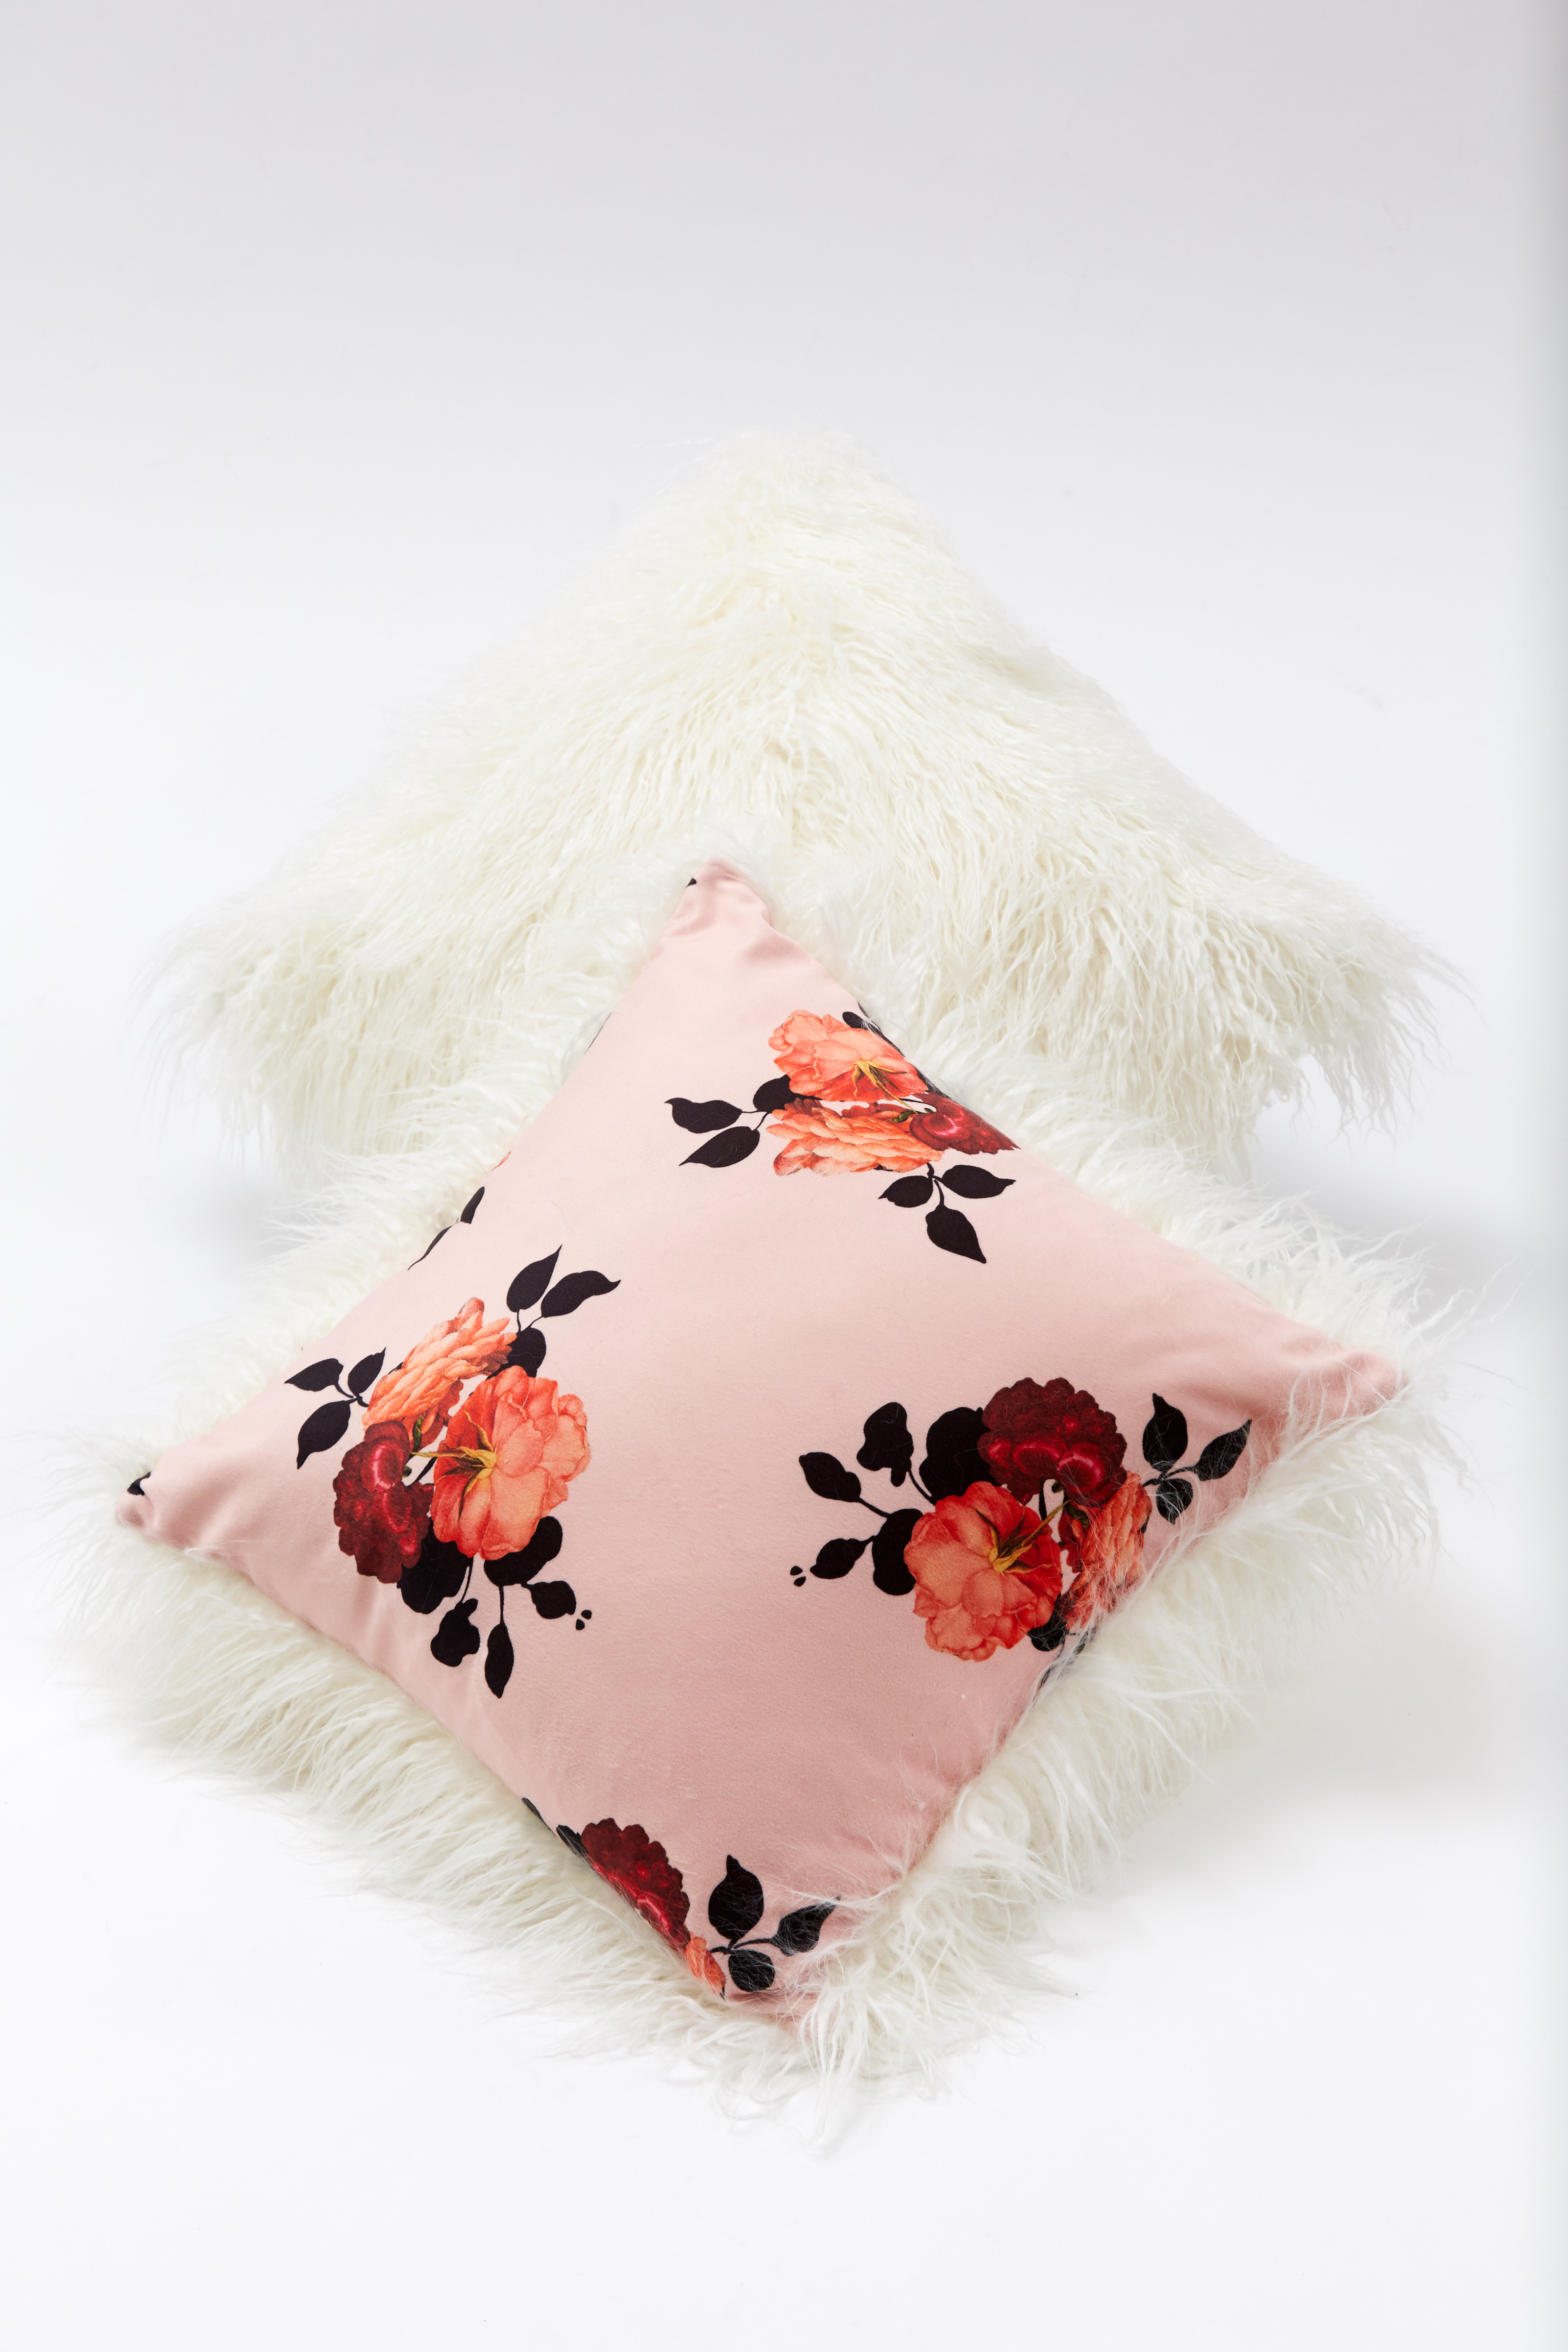 Pillow - Rose Floral by Maison Atia on curated-crowd.com